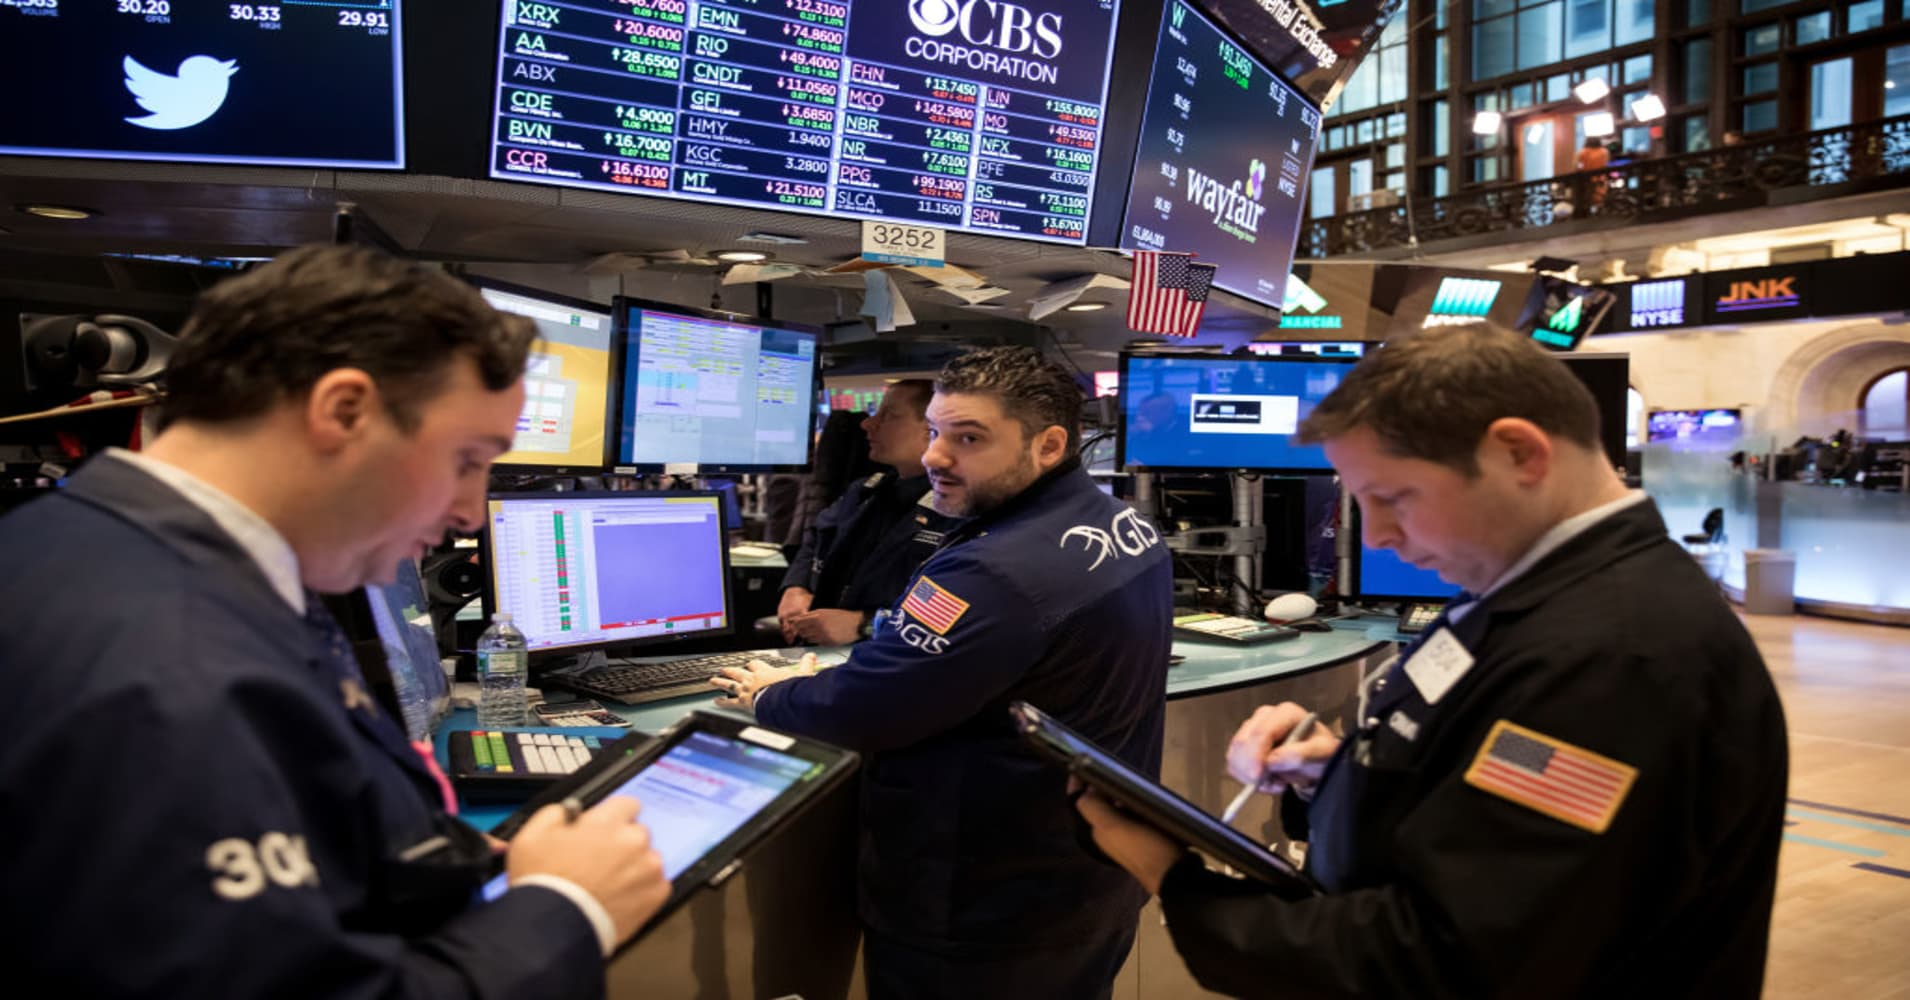 Markets point to drop at open as investors worry about global growth